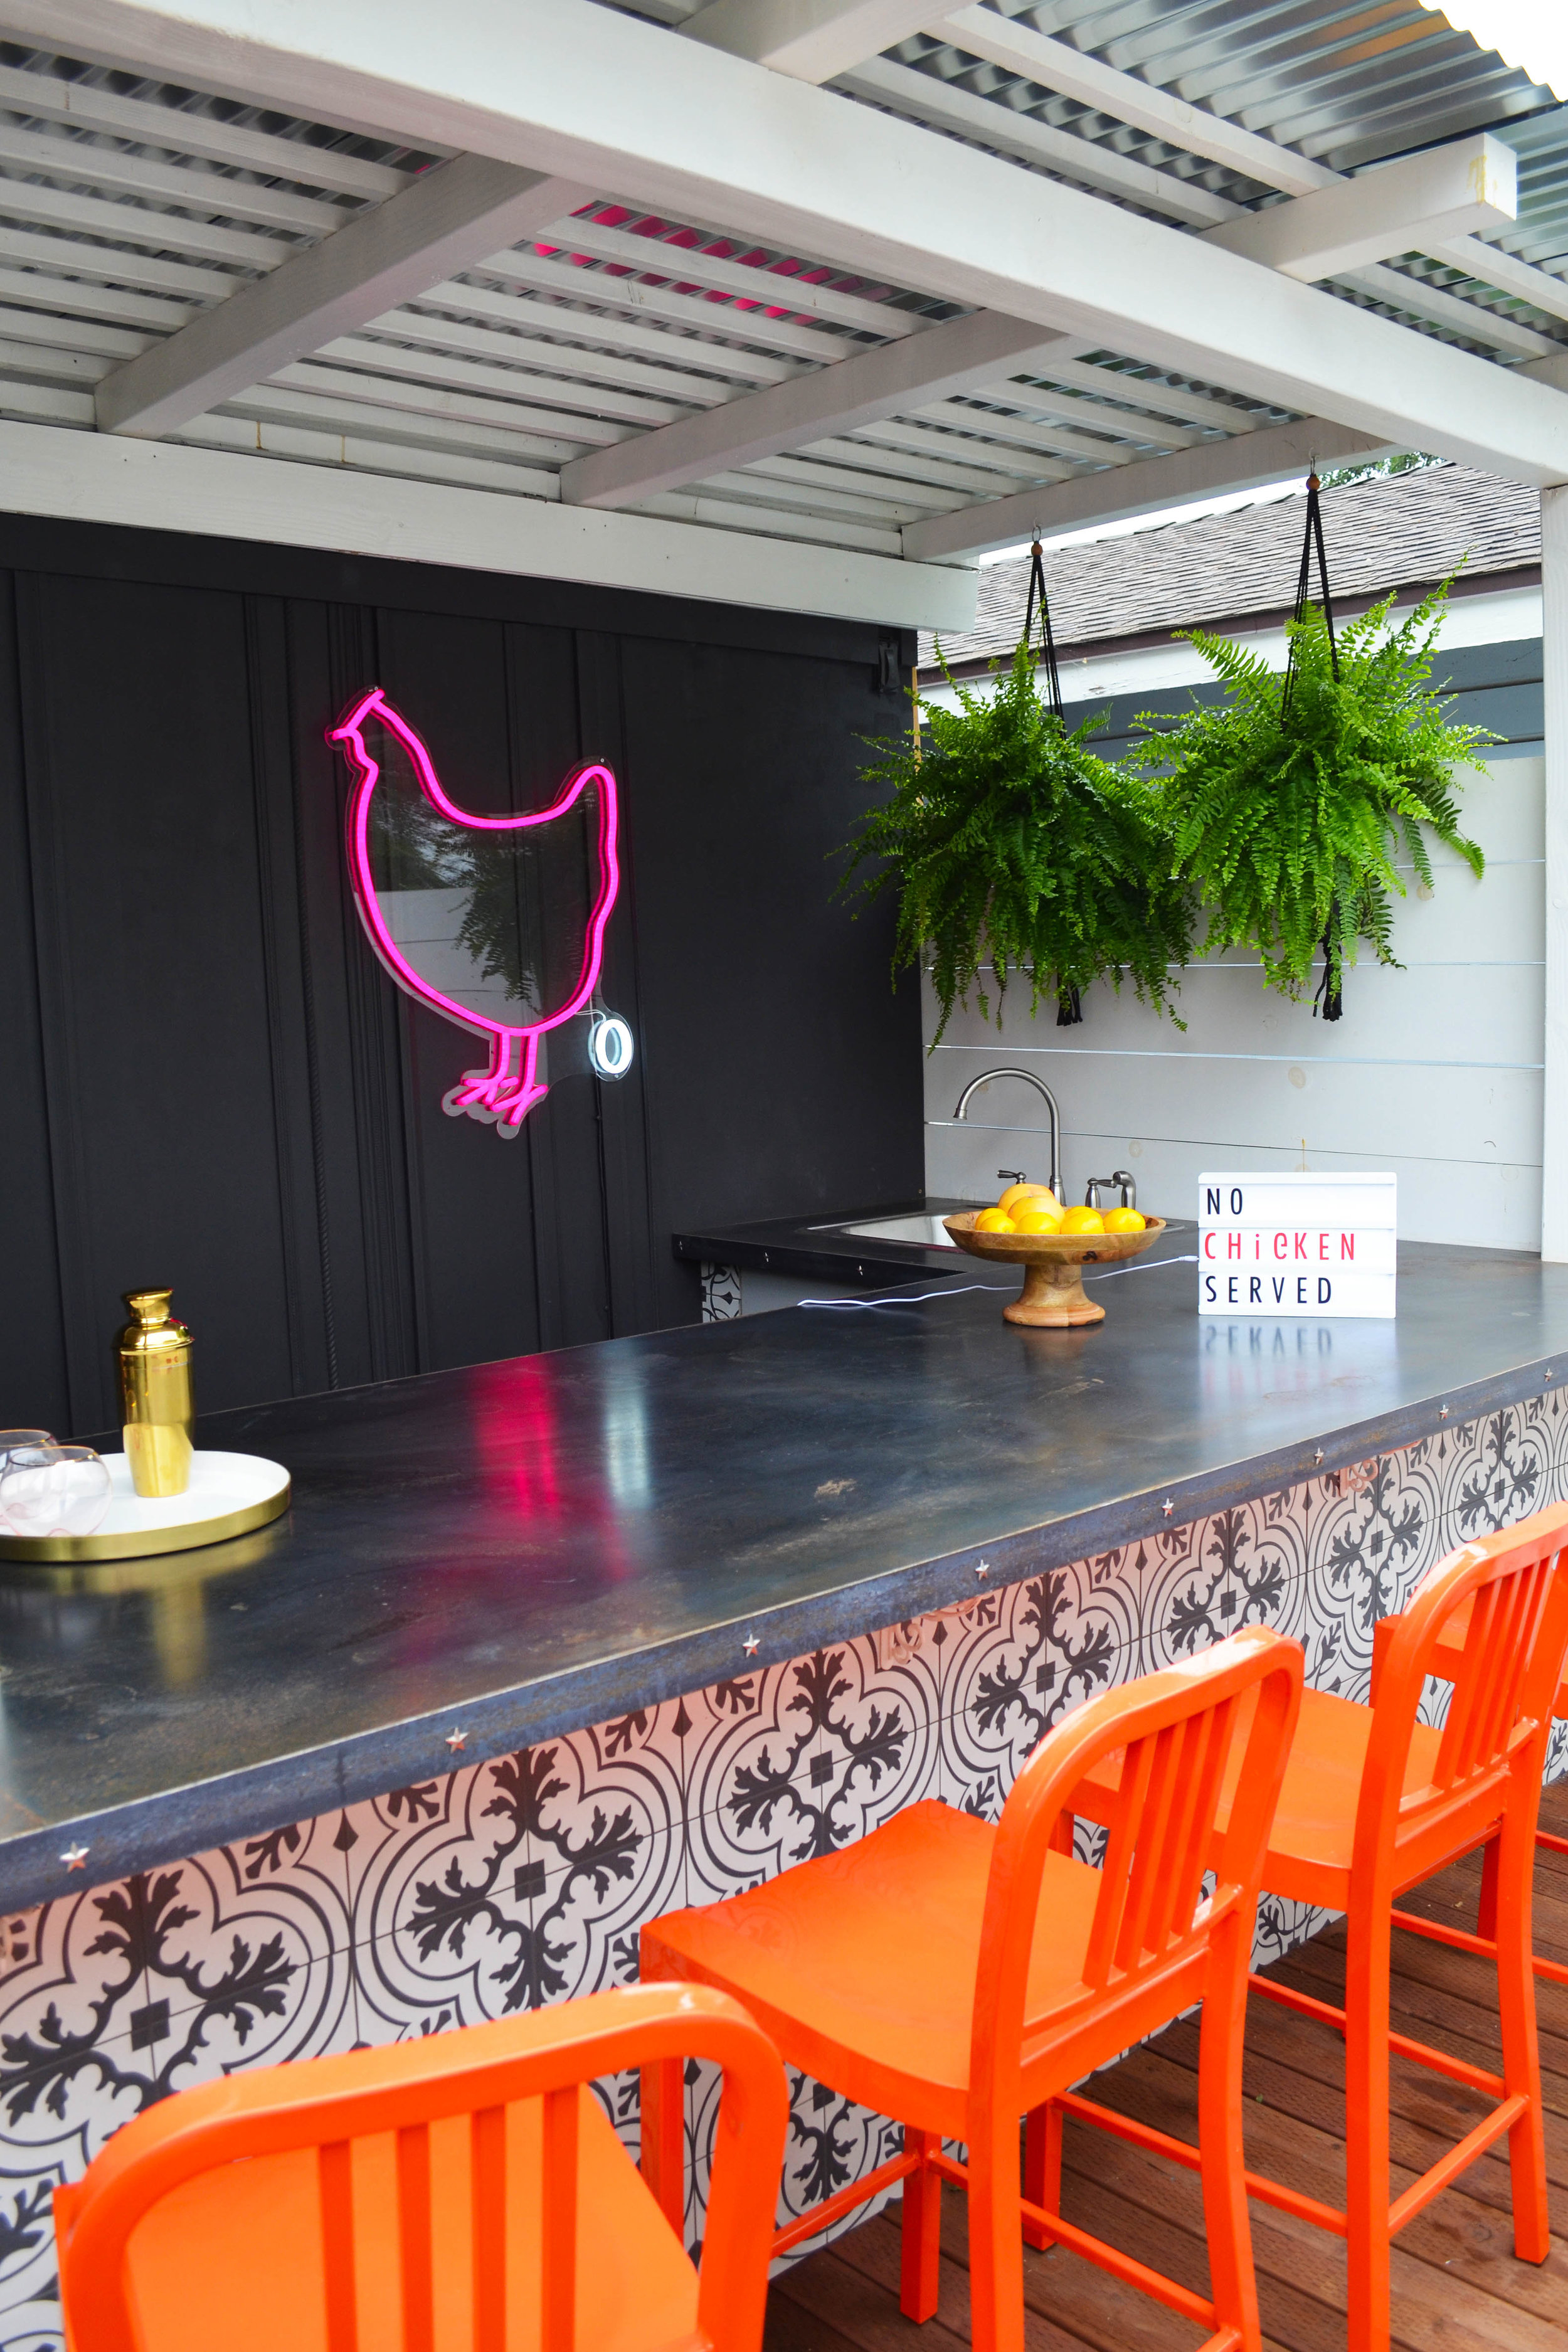 Just your typical, everyday outdoor bar.